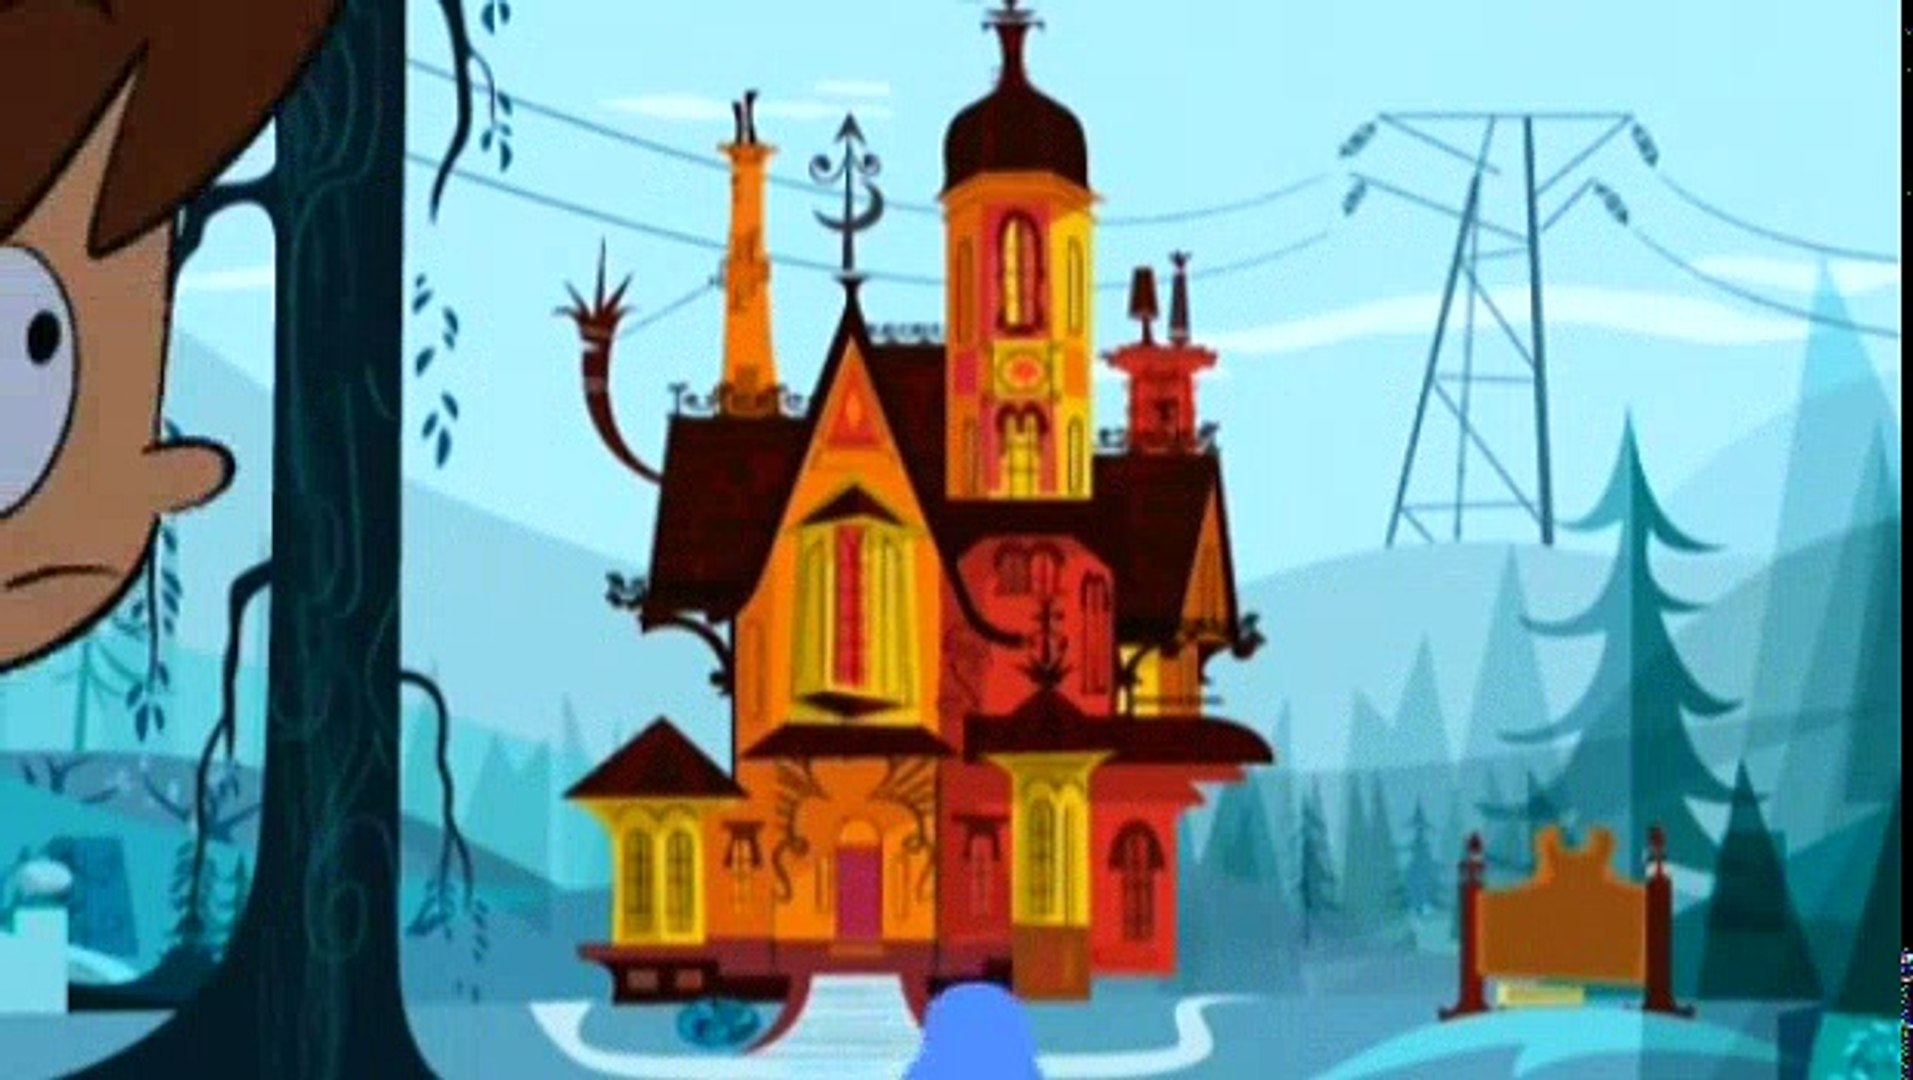 Foster's Home for Imaginary Friends S01E01 - House of Bloo's Pt 1